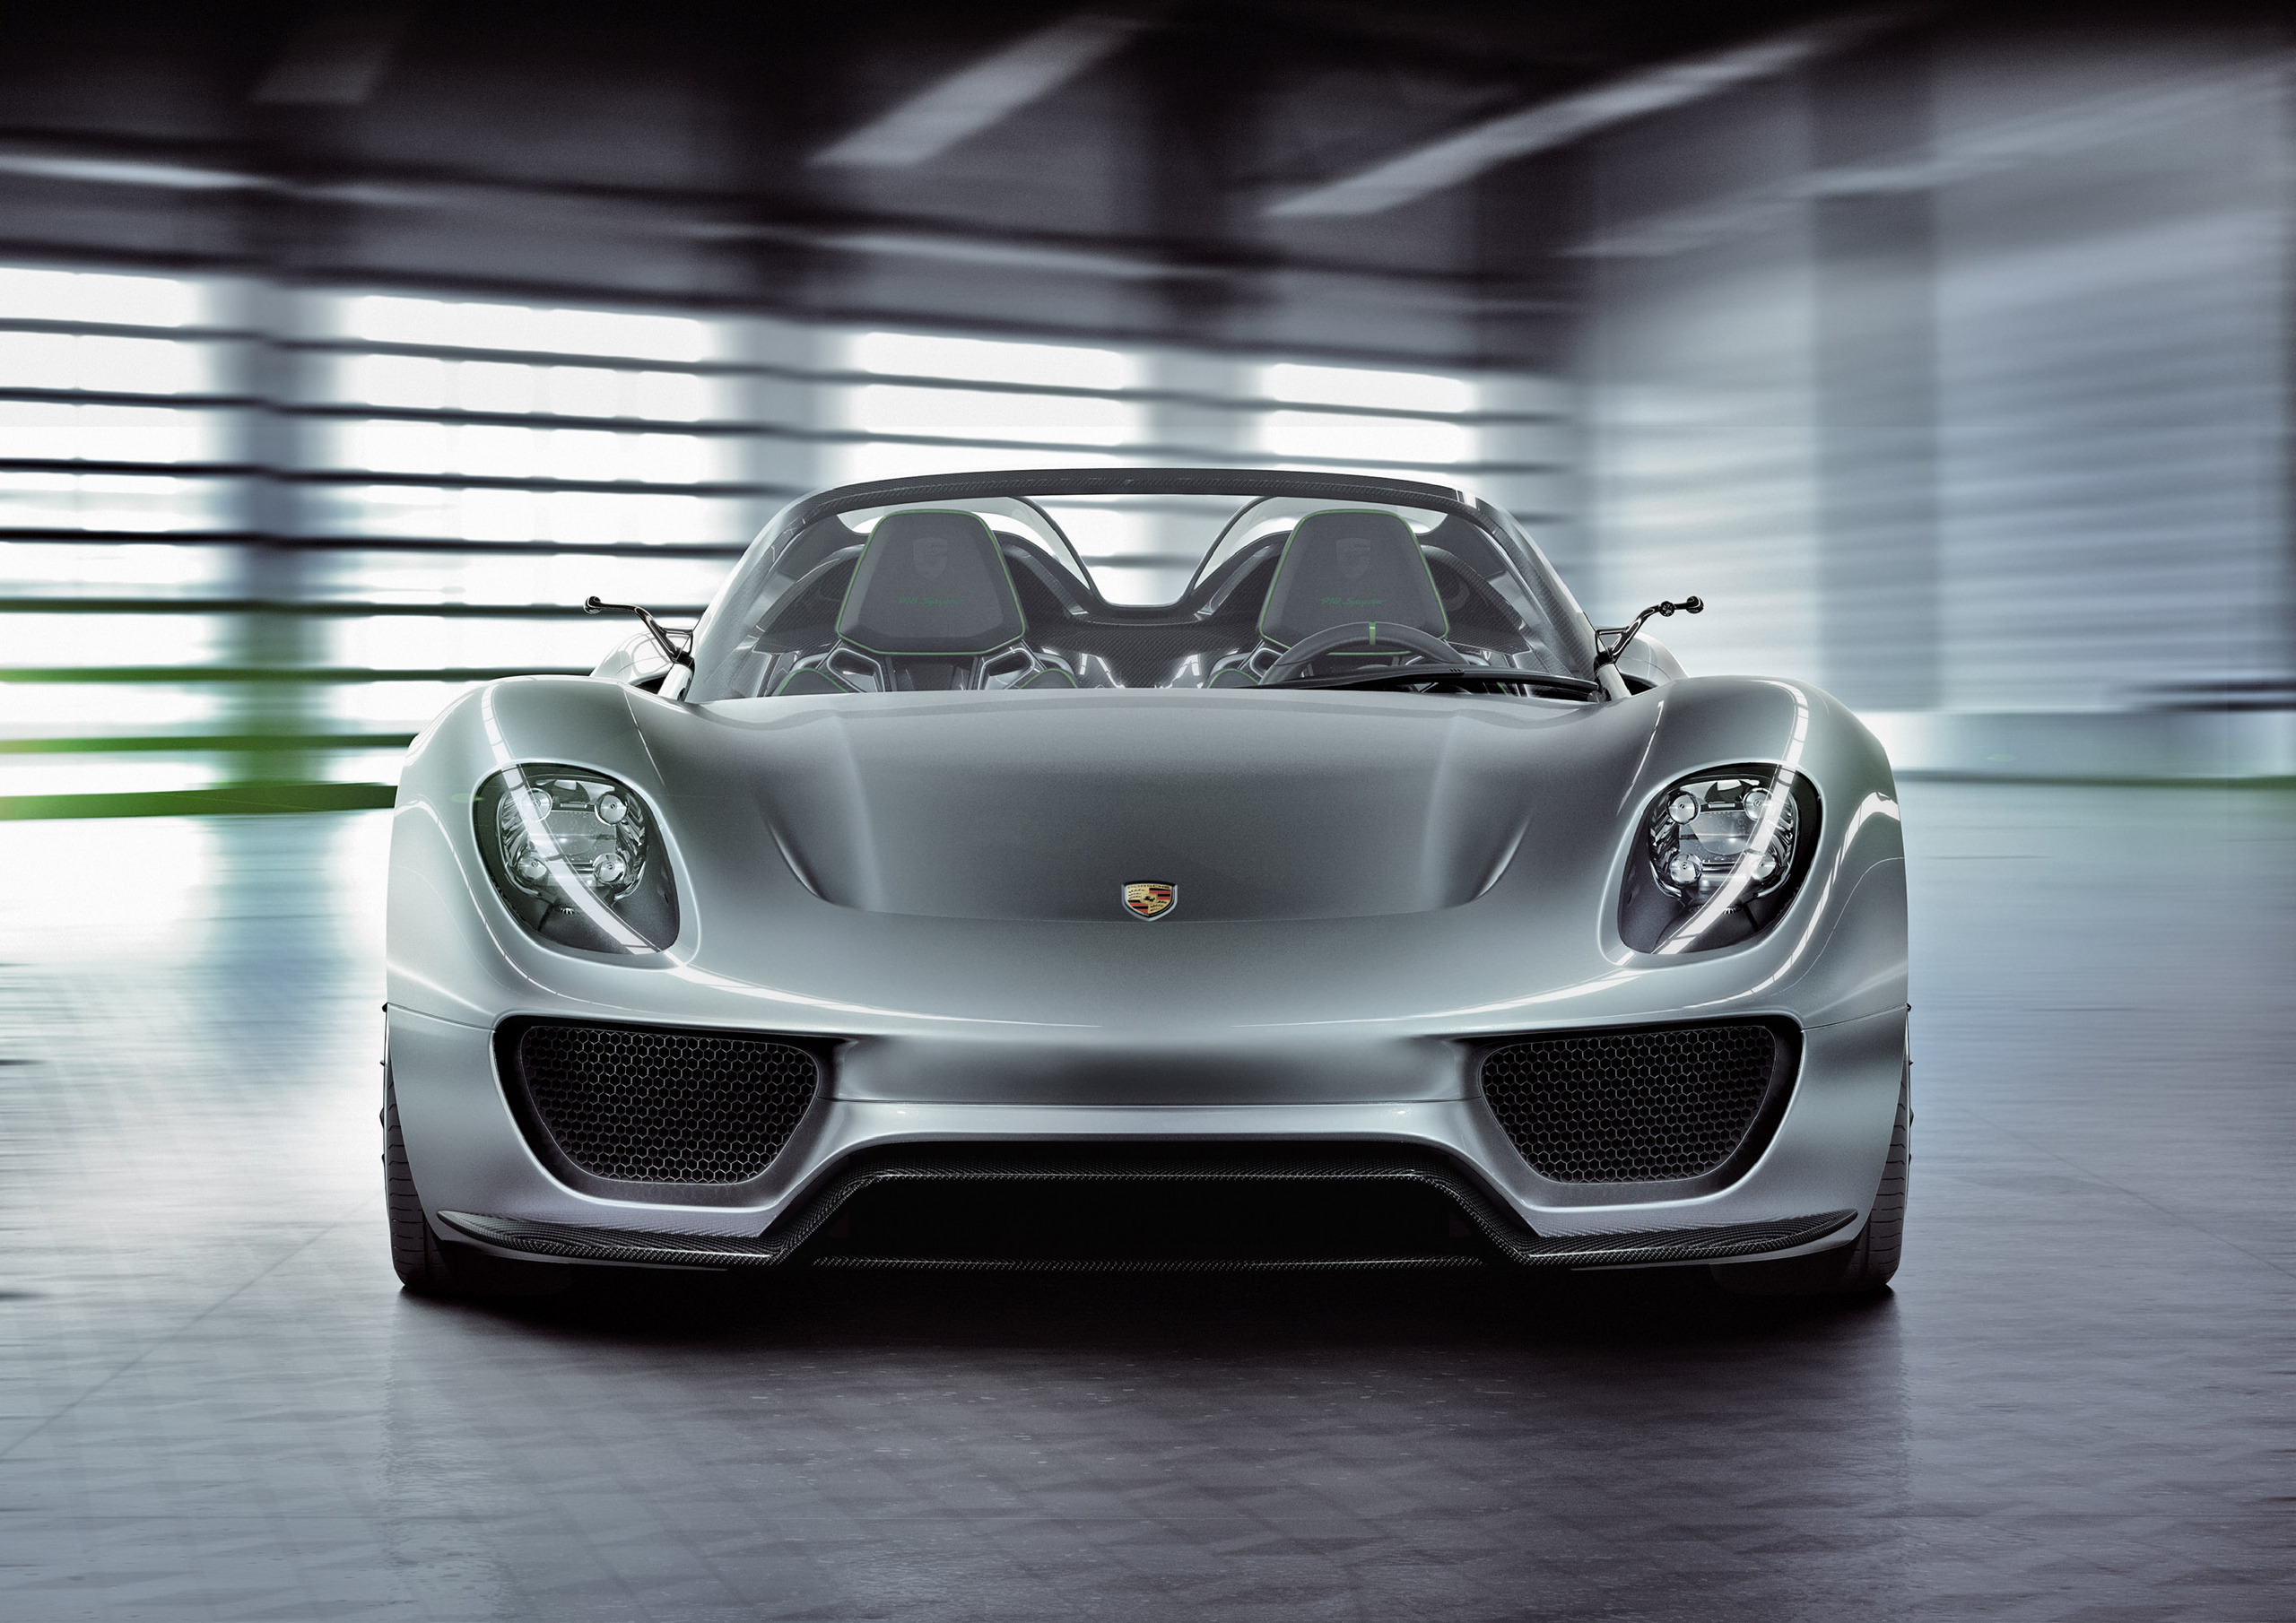 exotic cars images porsche 918 spyder hd wallpaper and background photos 25068643. Black Bedroom Furniture Sets. Home Design Ideas